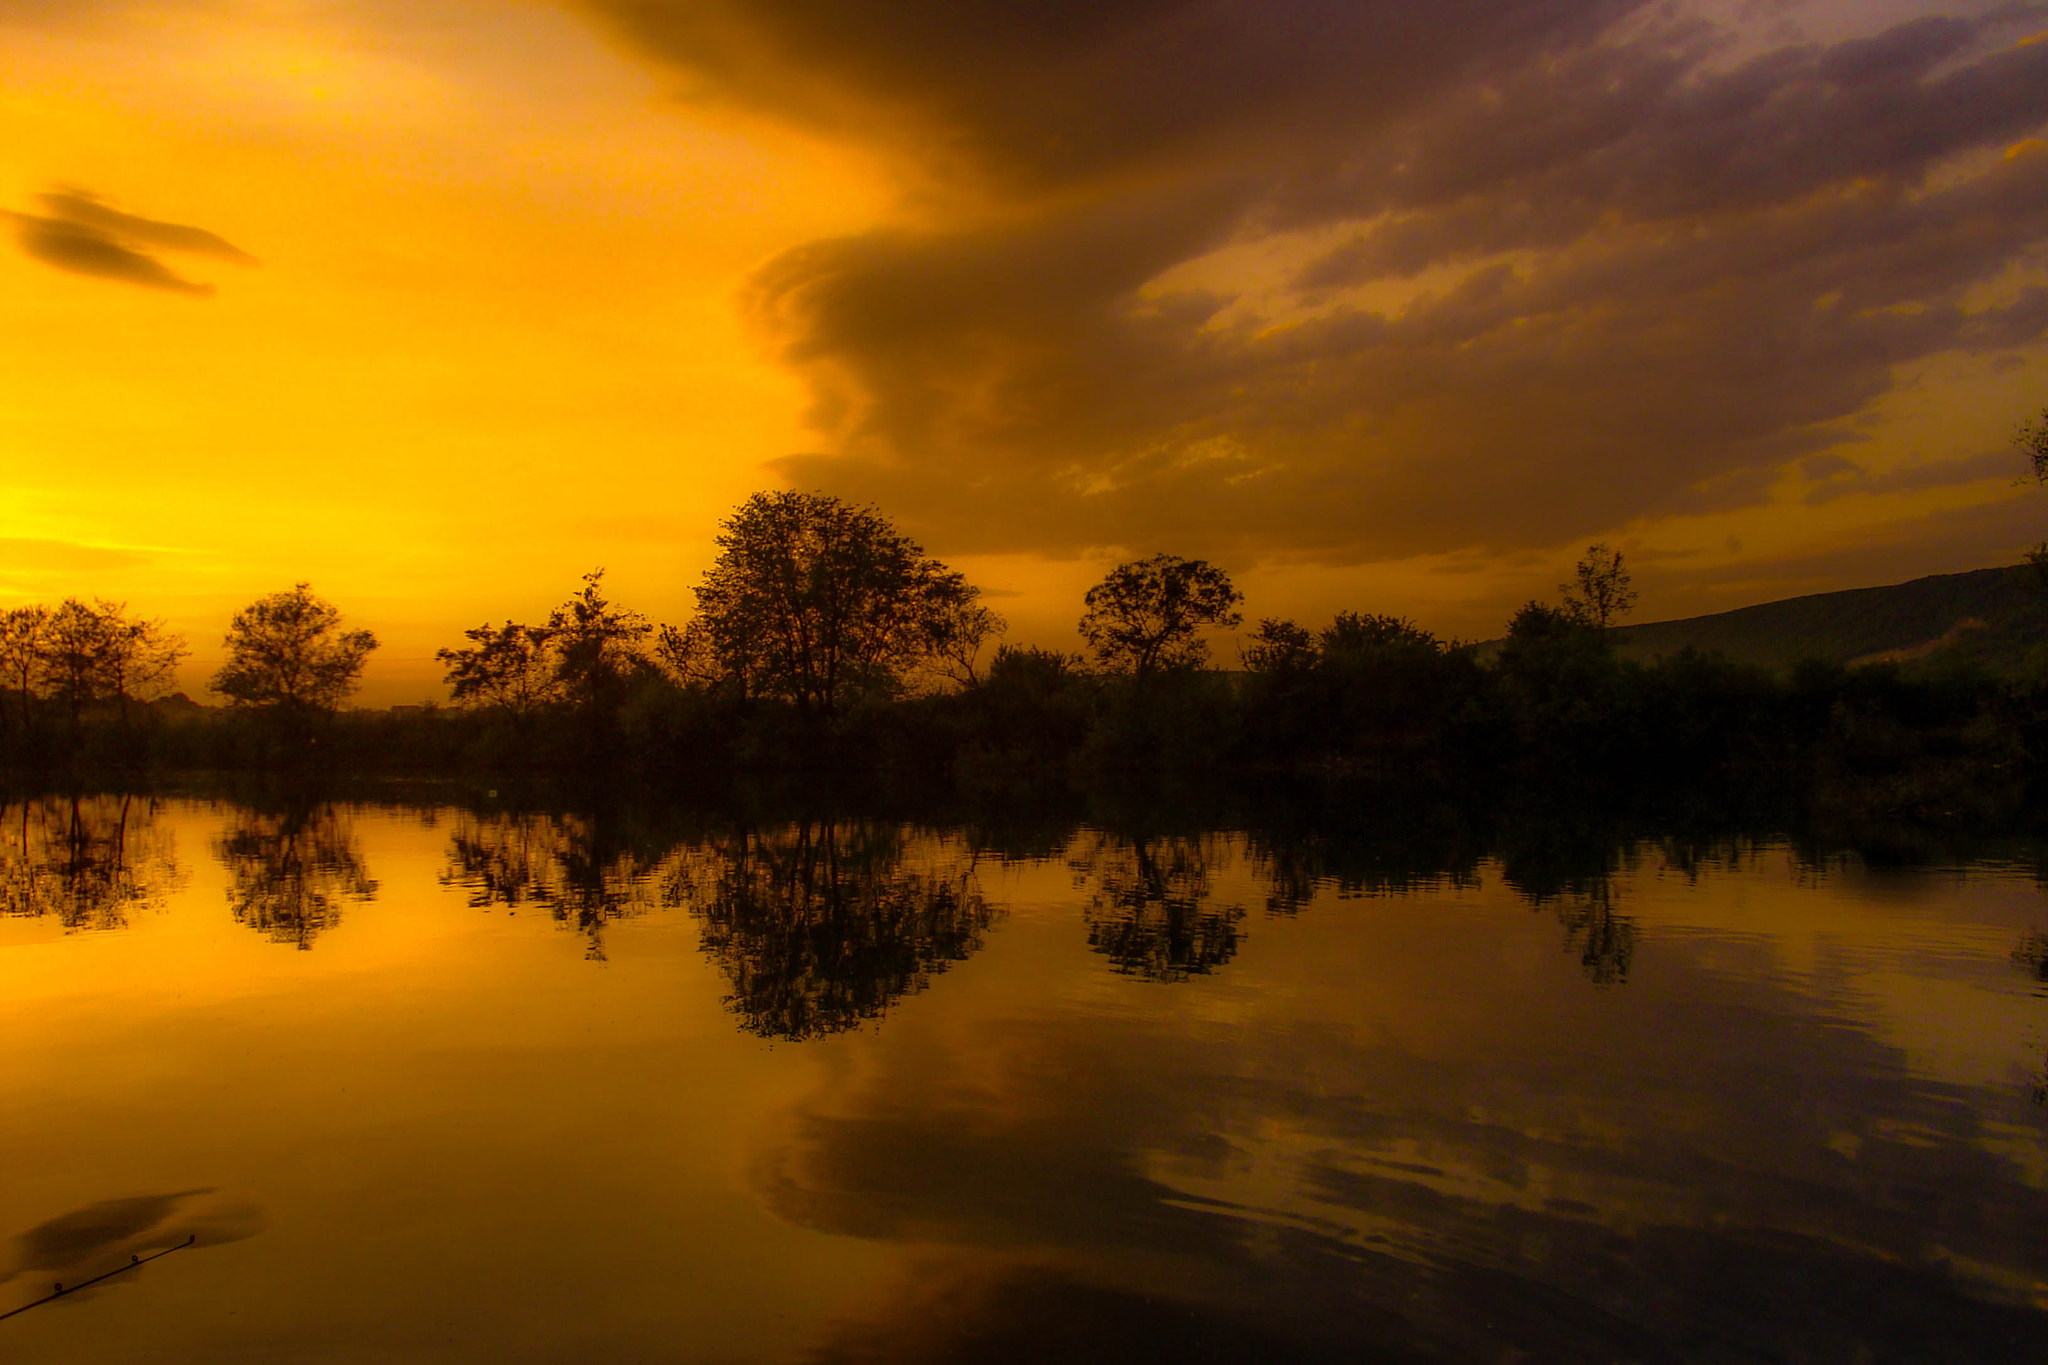 Photograph Yellow River by Davor Midžić on 500px